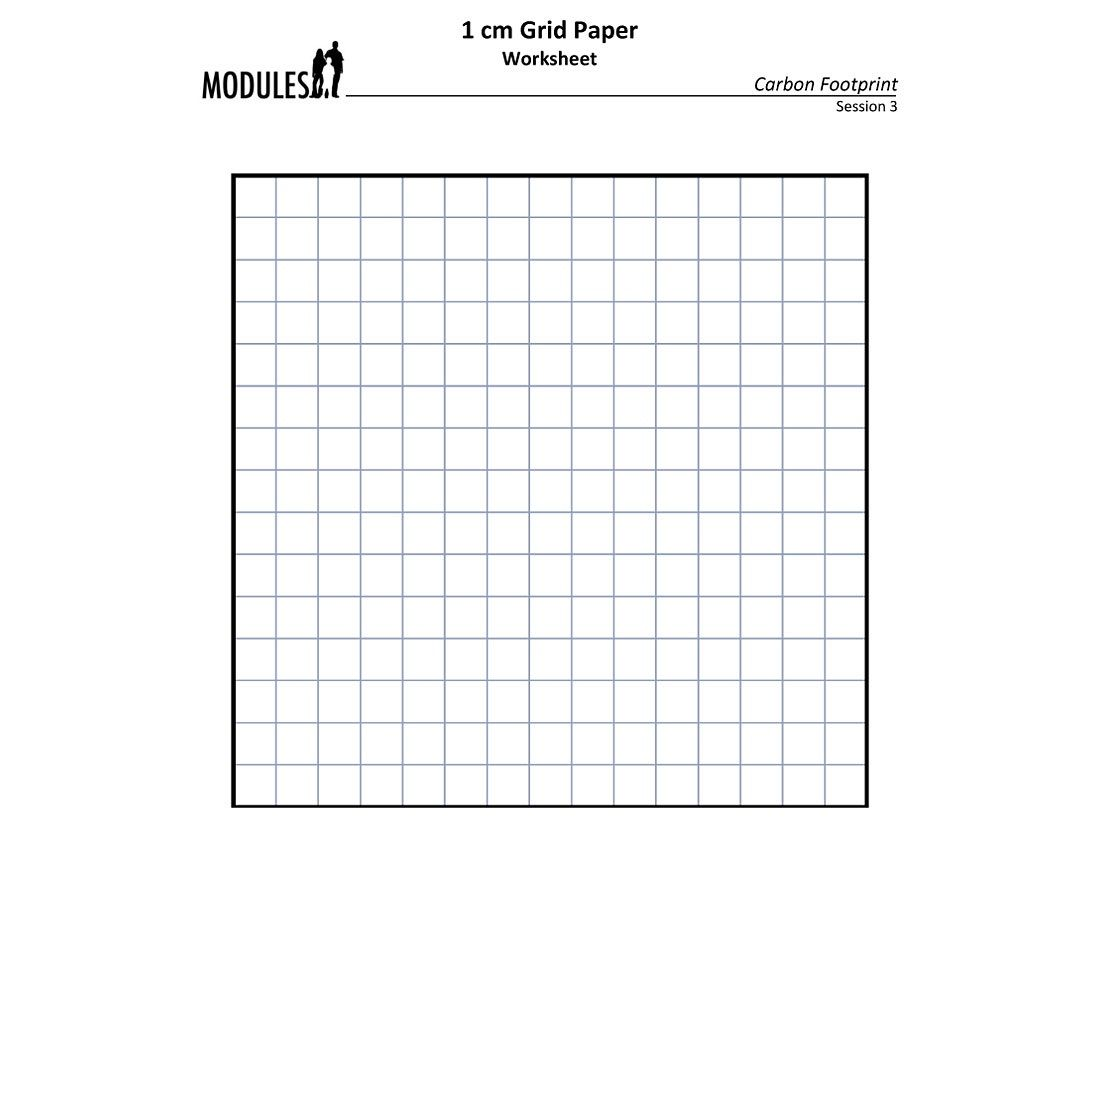 graph paper worksheets to print math worksheets for kids kids math worksheets fun math. Black Bedroom Furniture Sets. Home Design Ideas